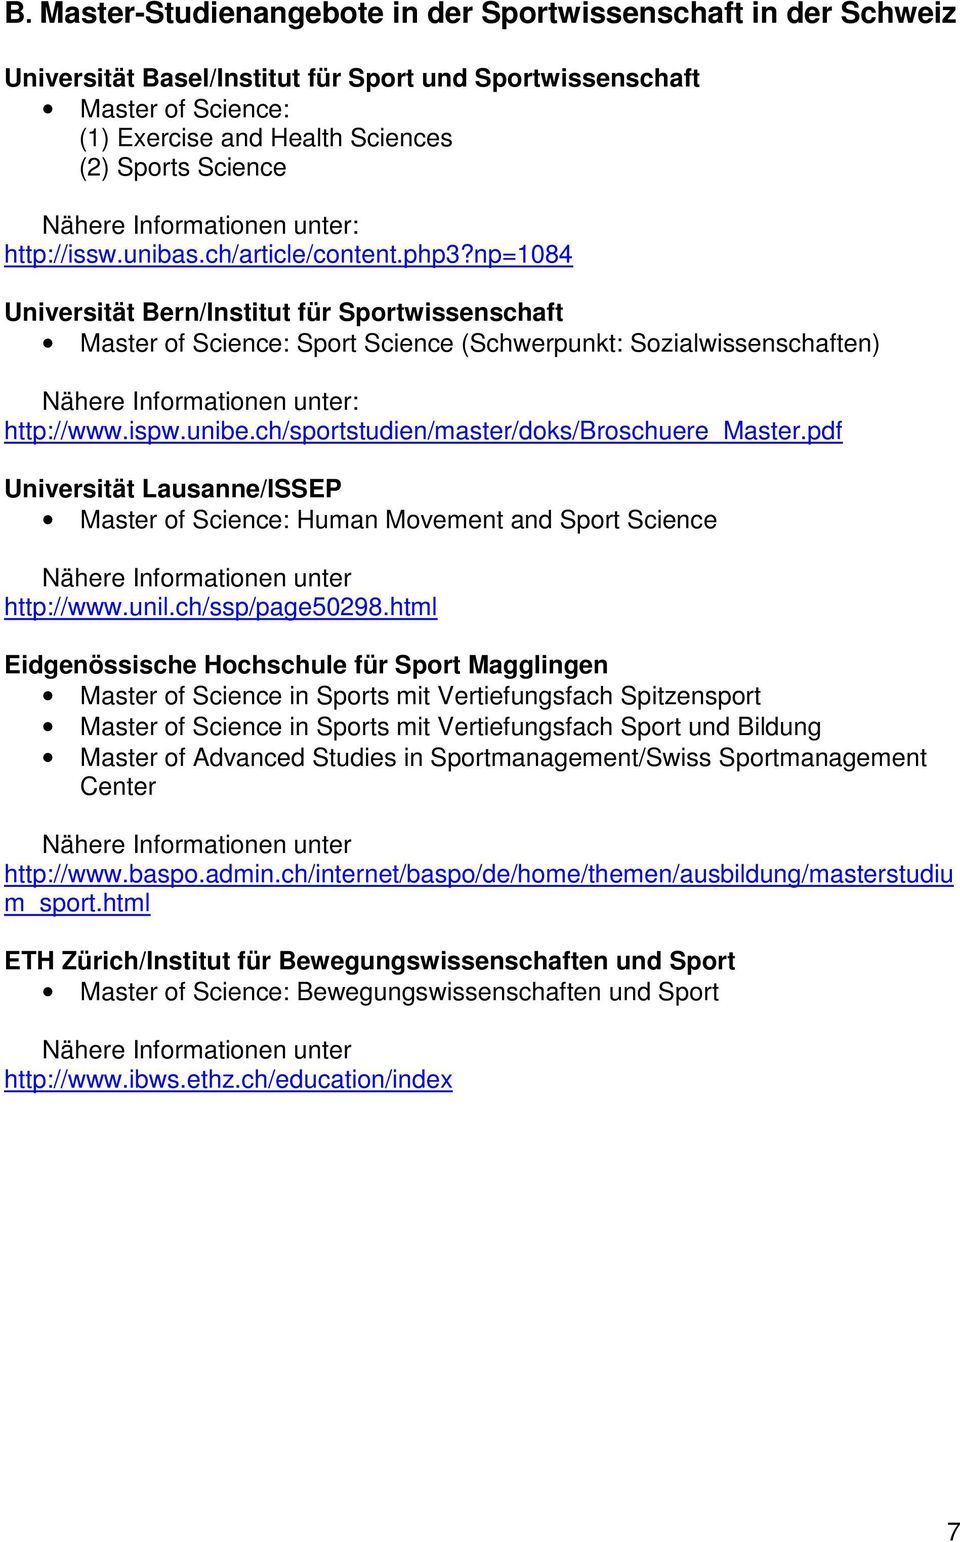 ch/sportstudien/master/doks/broschuere_master.pdf Universität Lausanne/ISSEP Master of Science: Human Movement and Sport Science http://www.unil.ch/ssp/page50298.